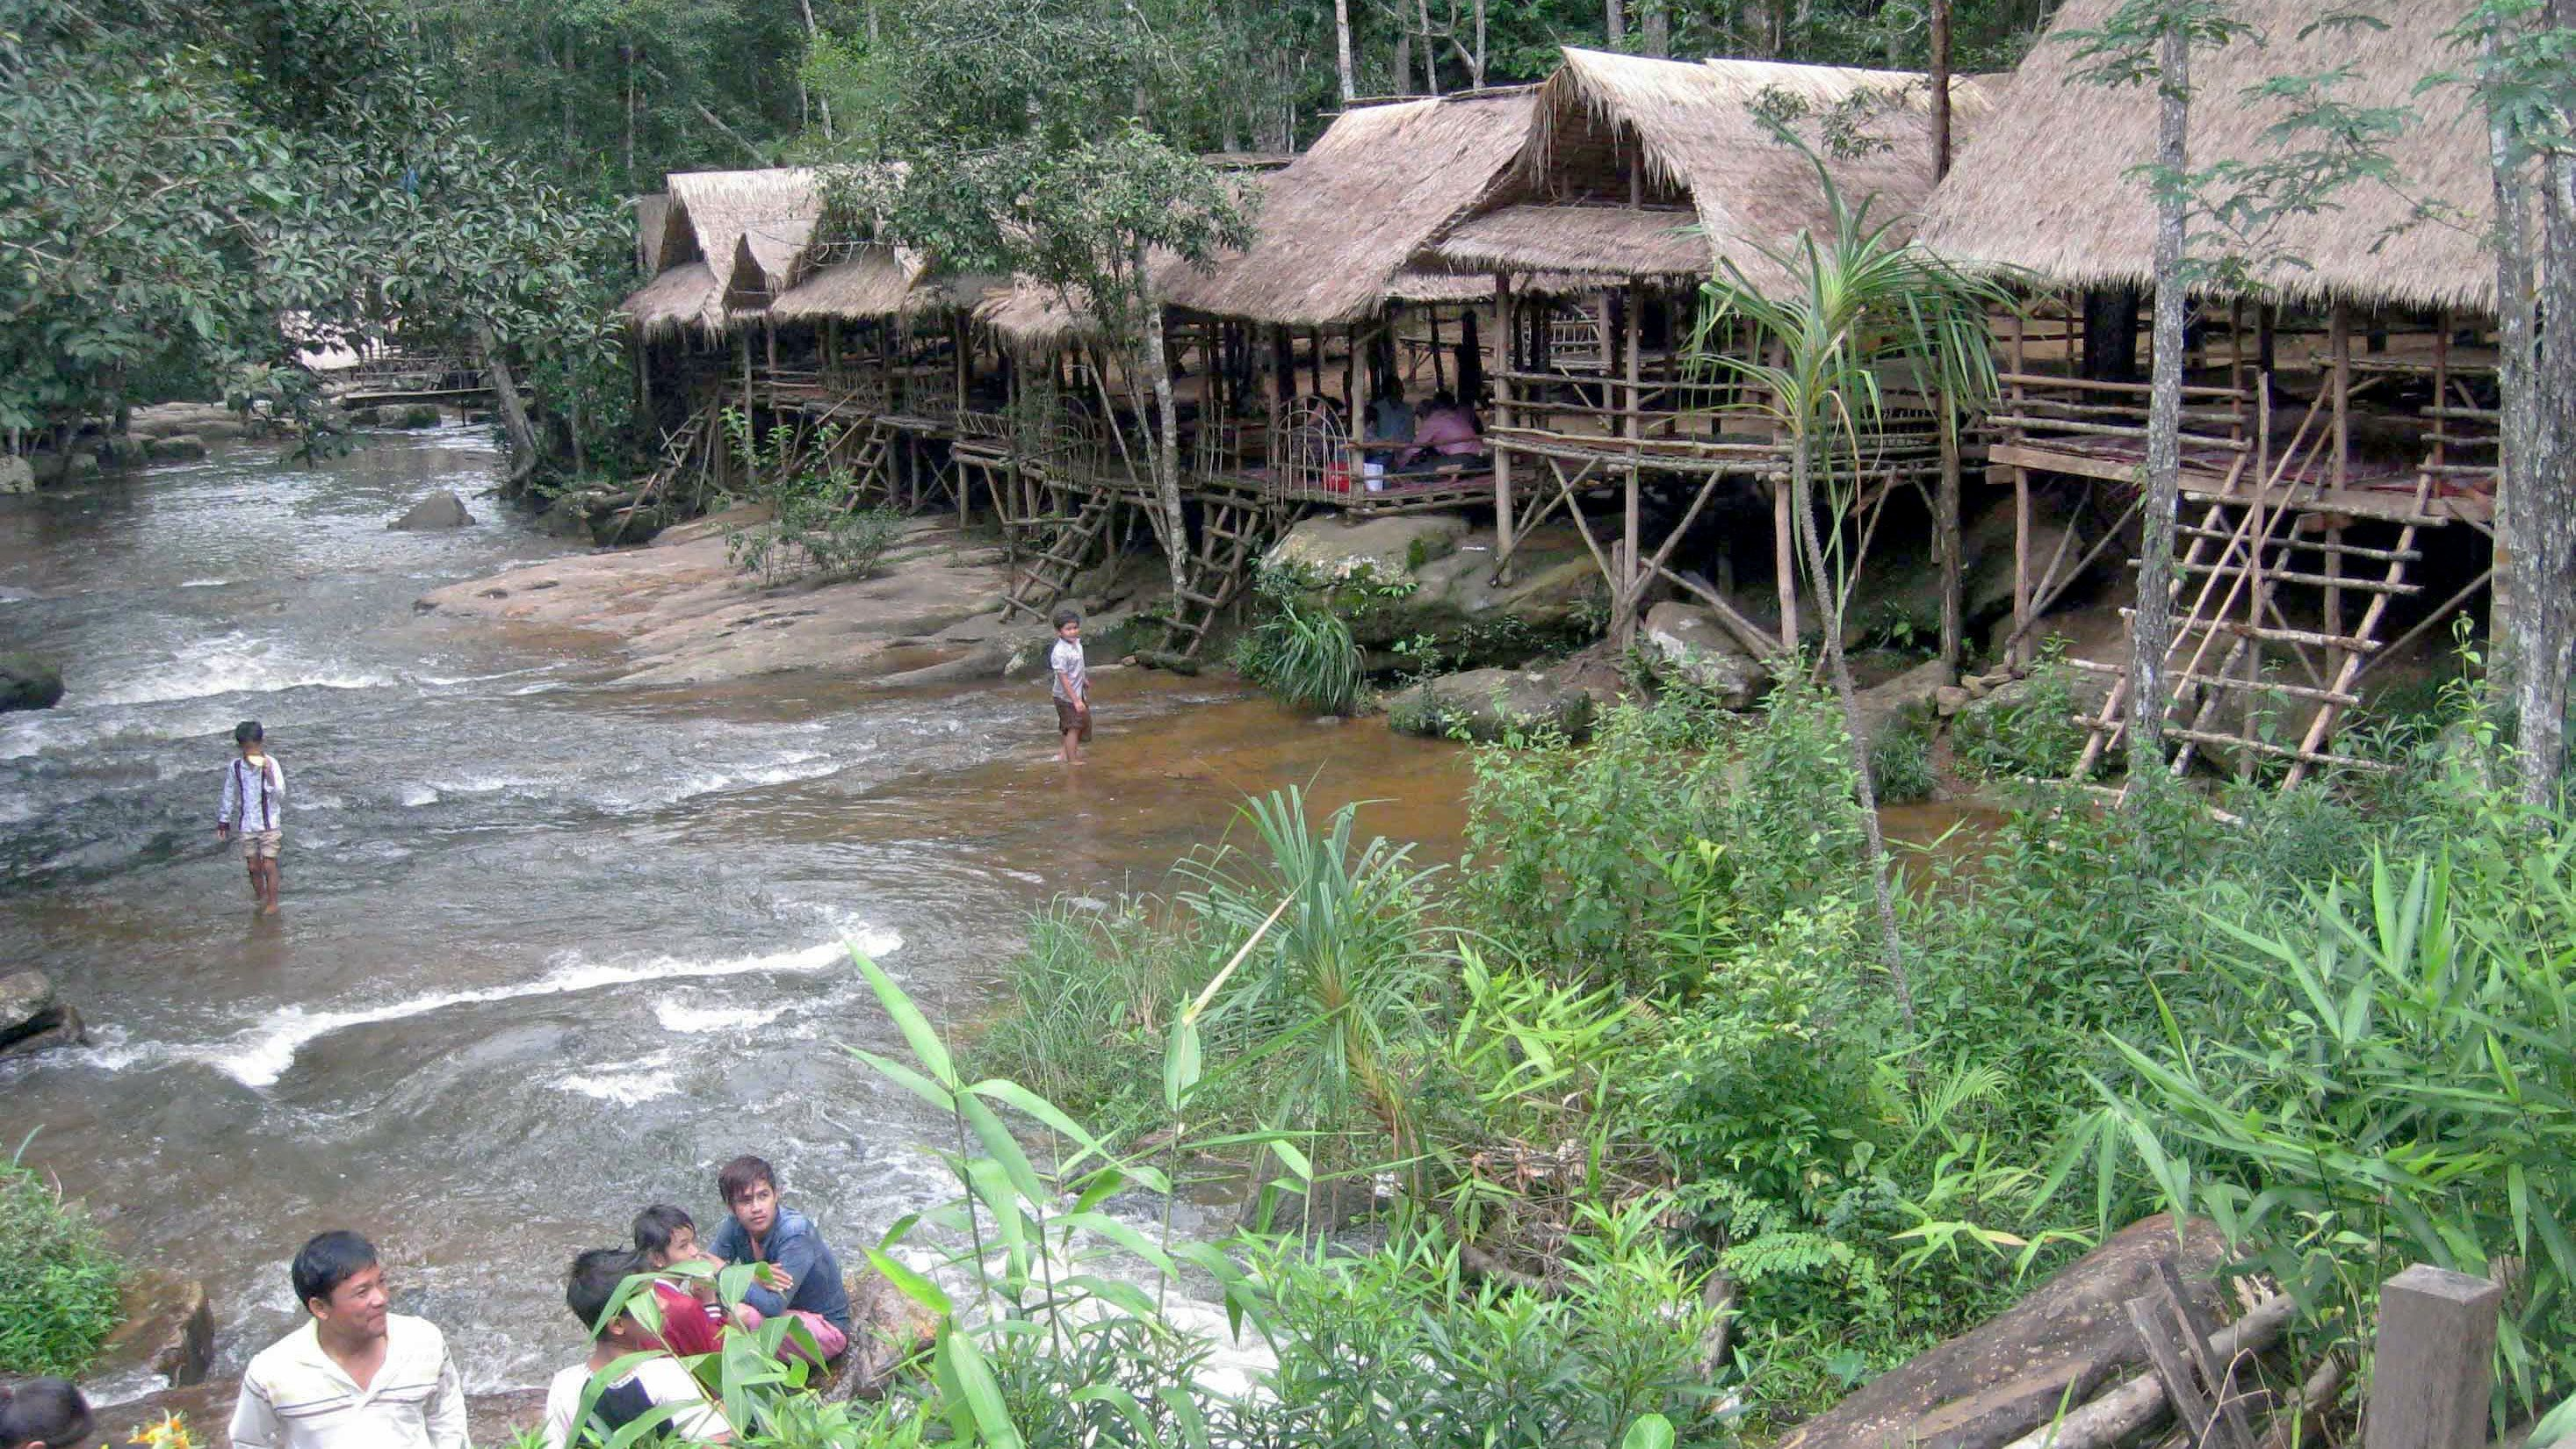 View of the village people and resting huts at Kirirom National Park in Phnom Penh